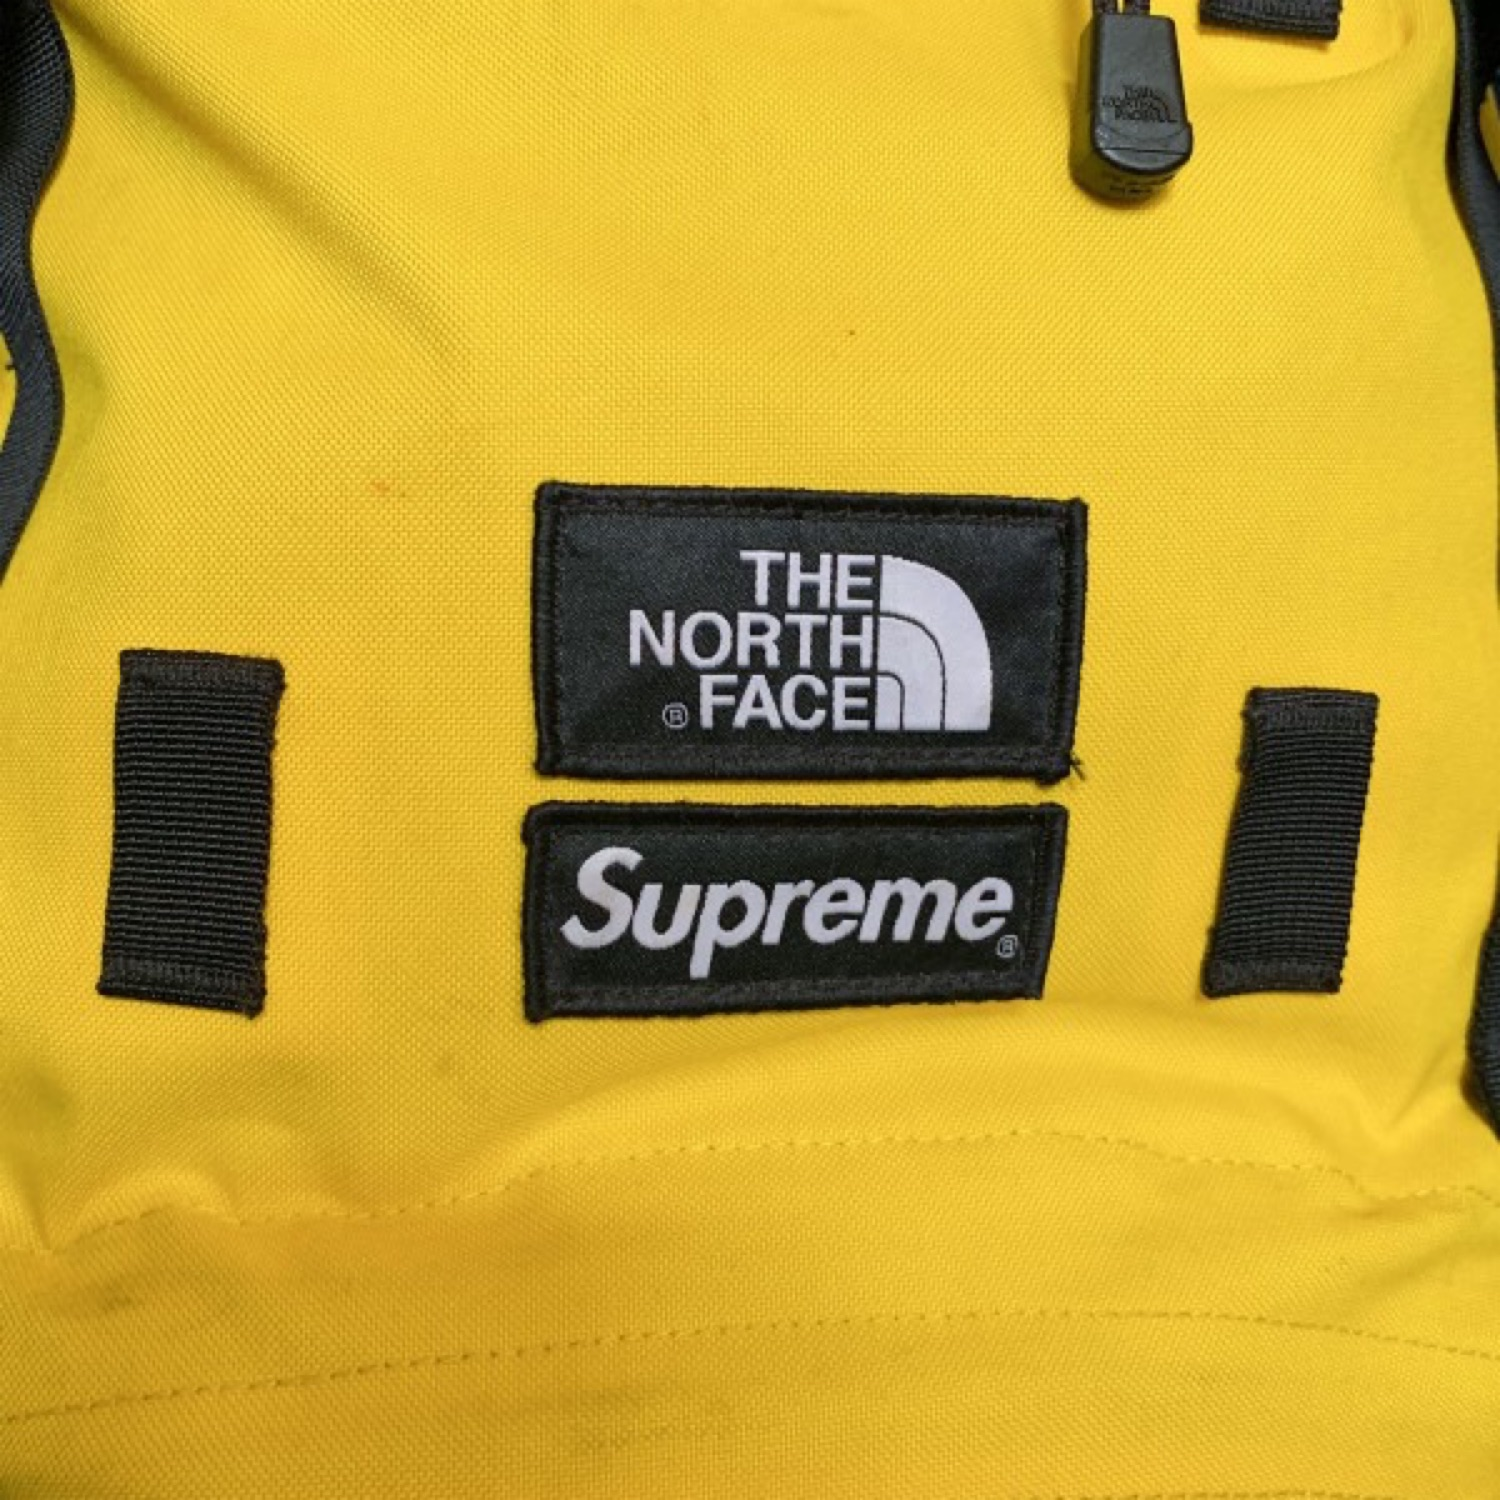 Supreme X The North Face Backpack